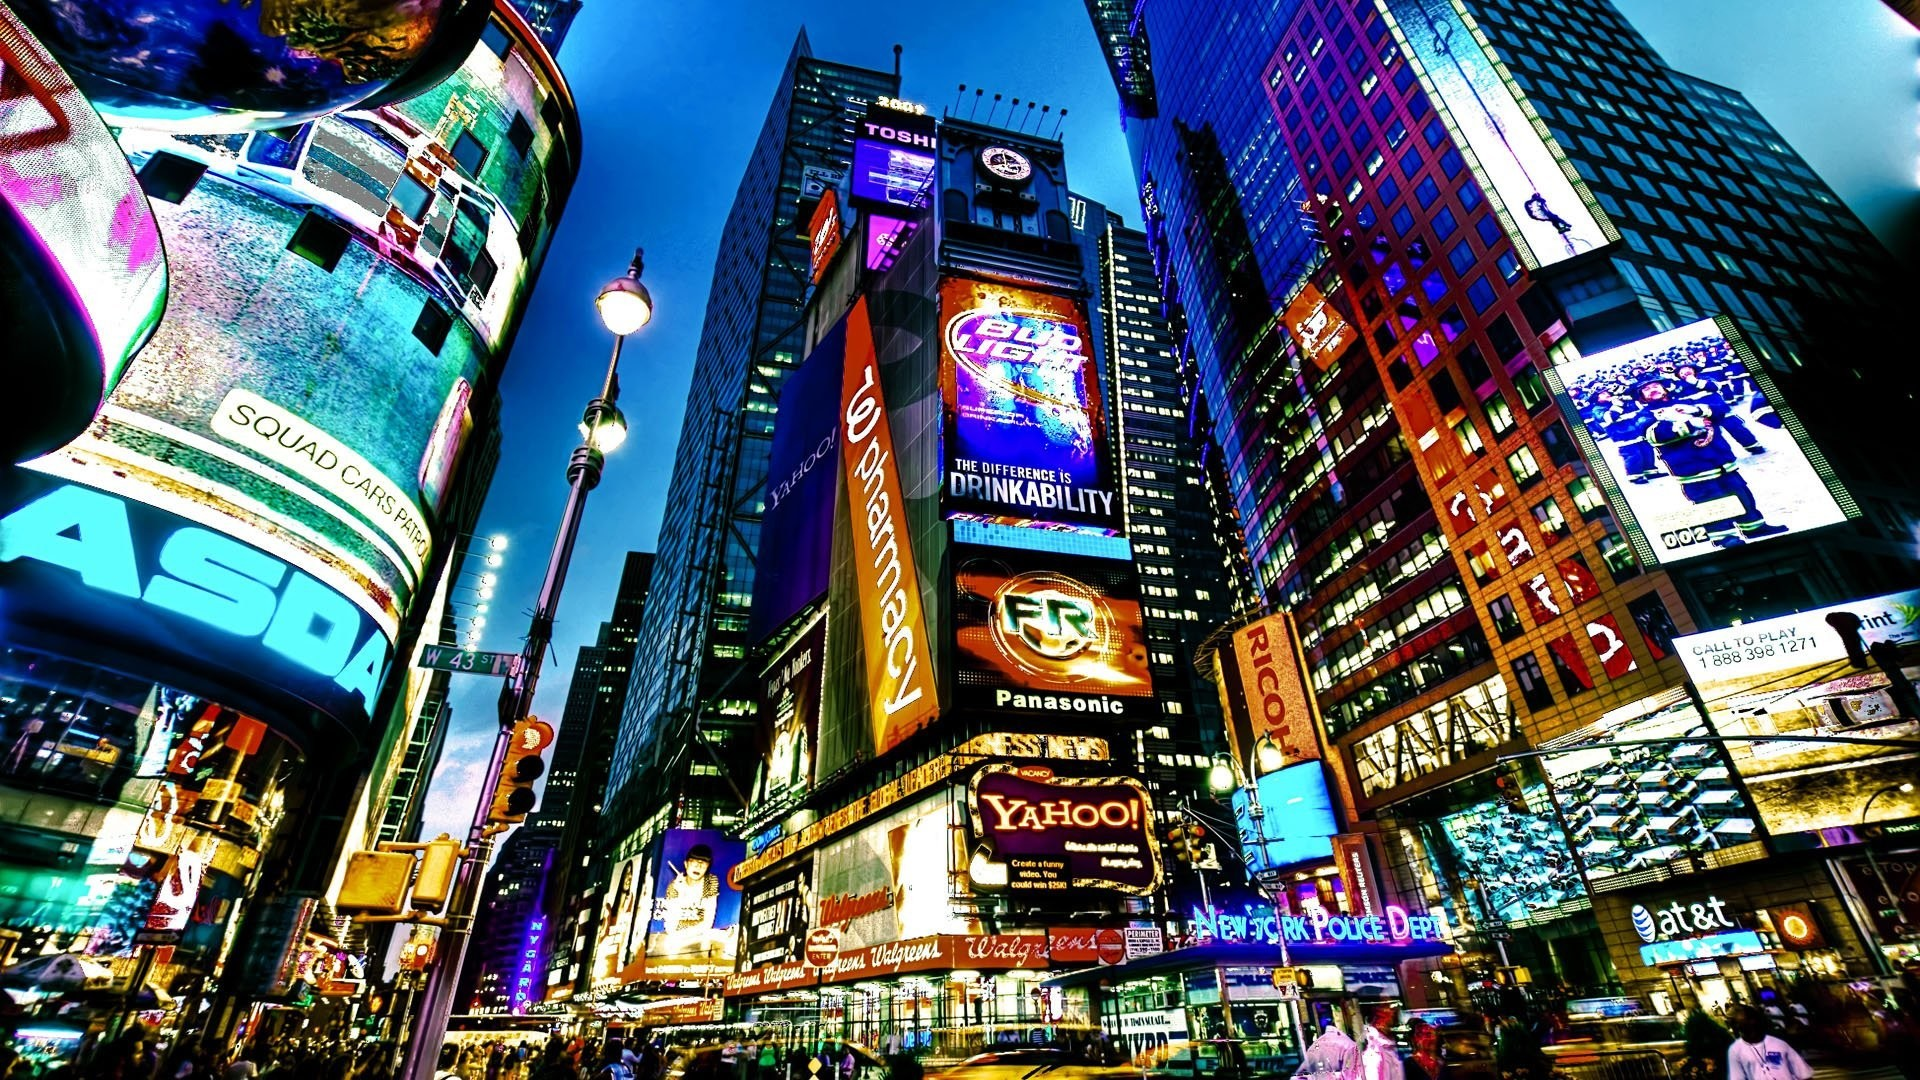 Times square wallpaper 58 images - Times square background ...